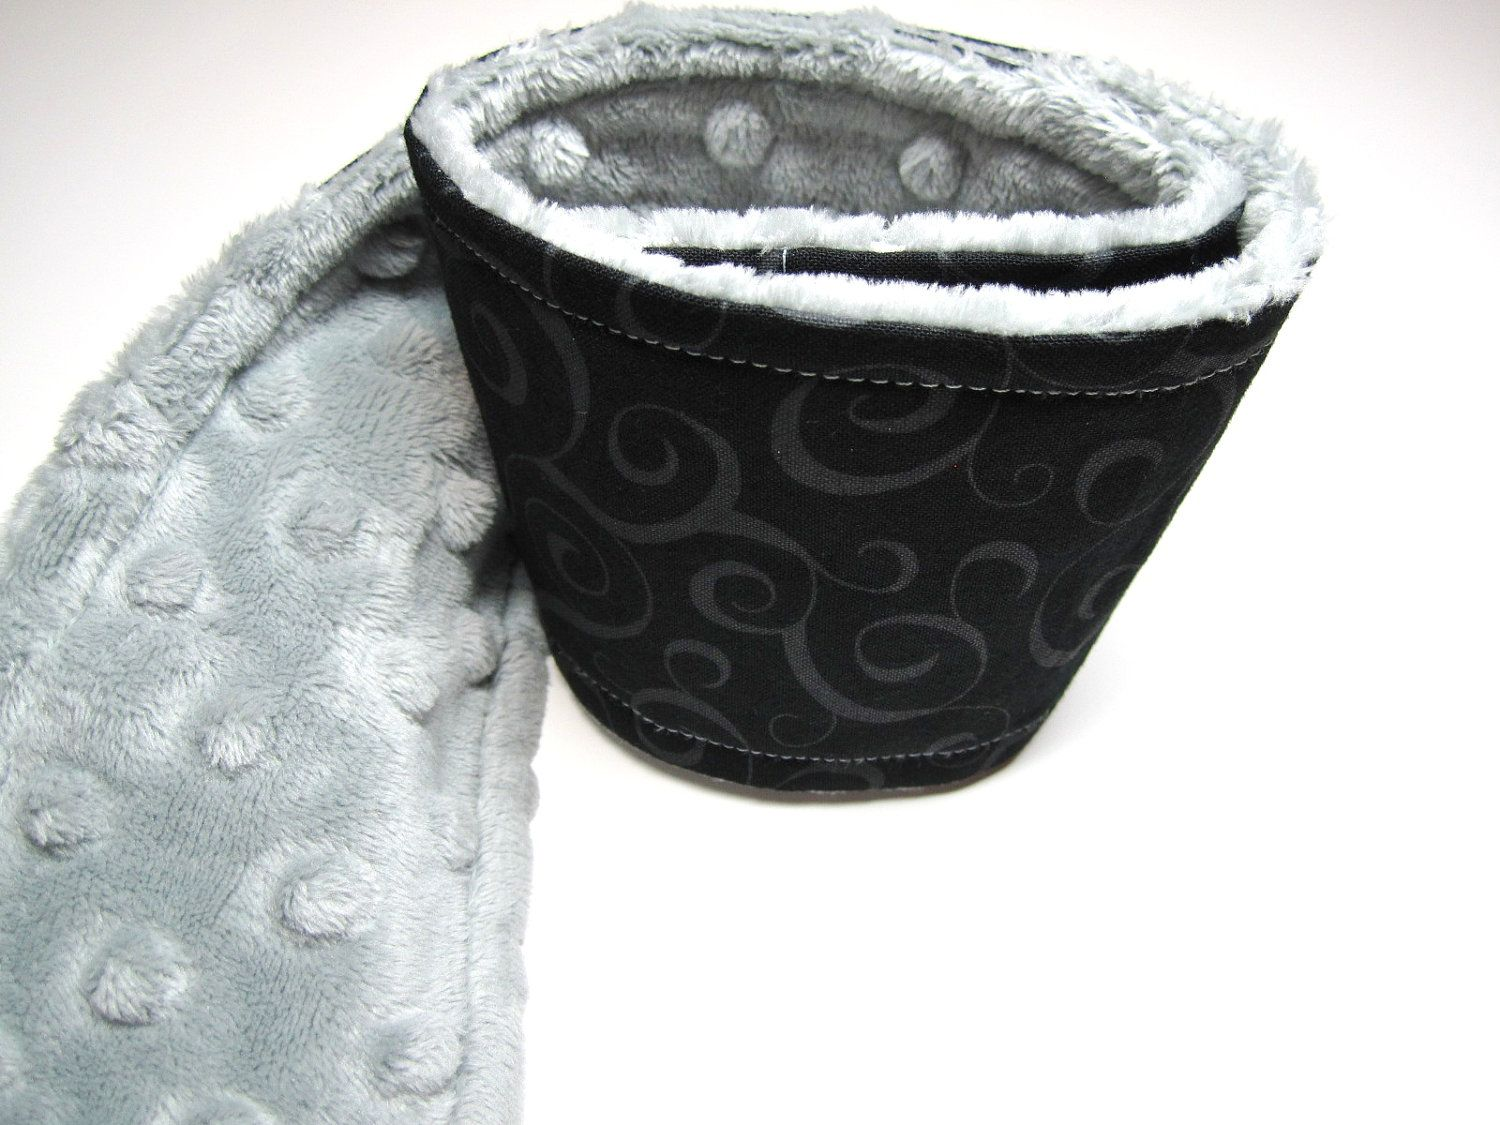 Camera Strap Cover in Black Scroll with Light Minky from Pickleberrylane